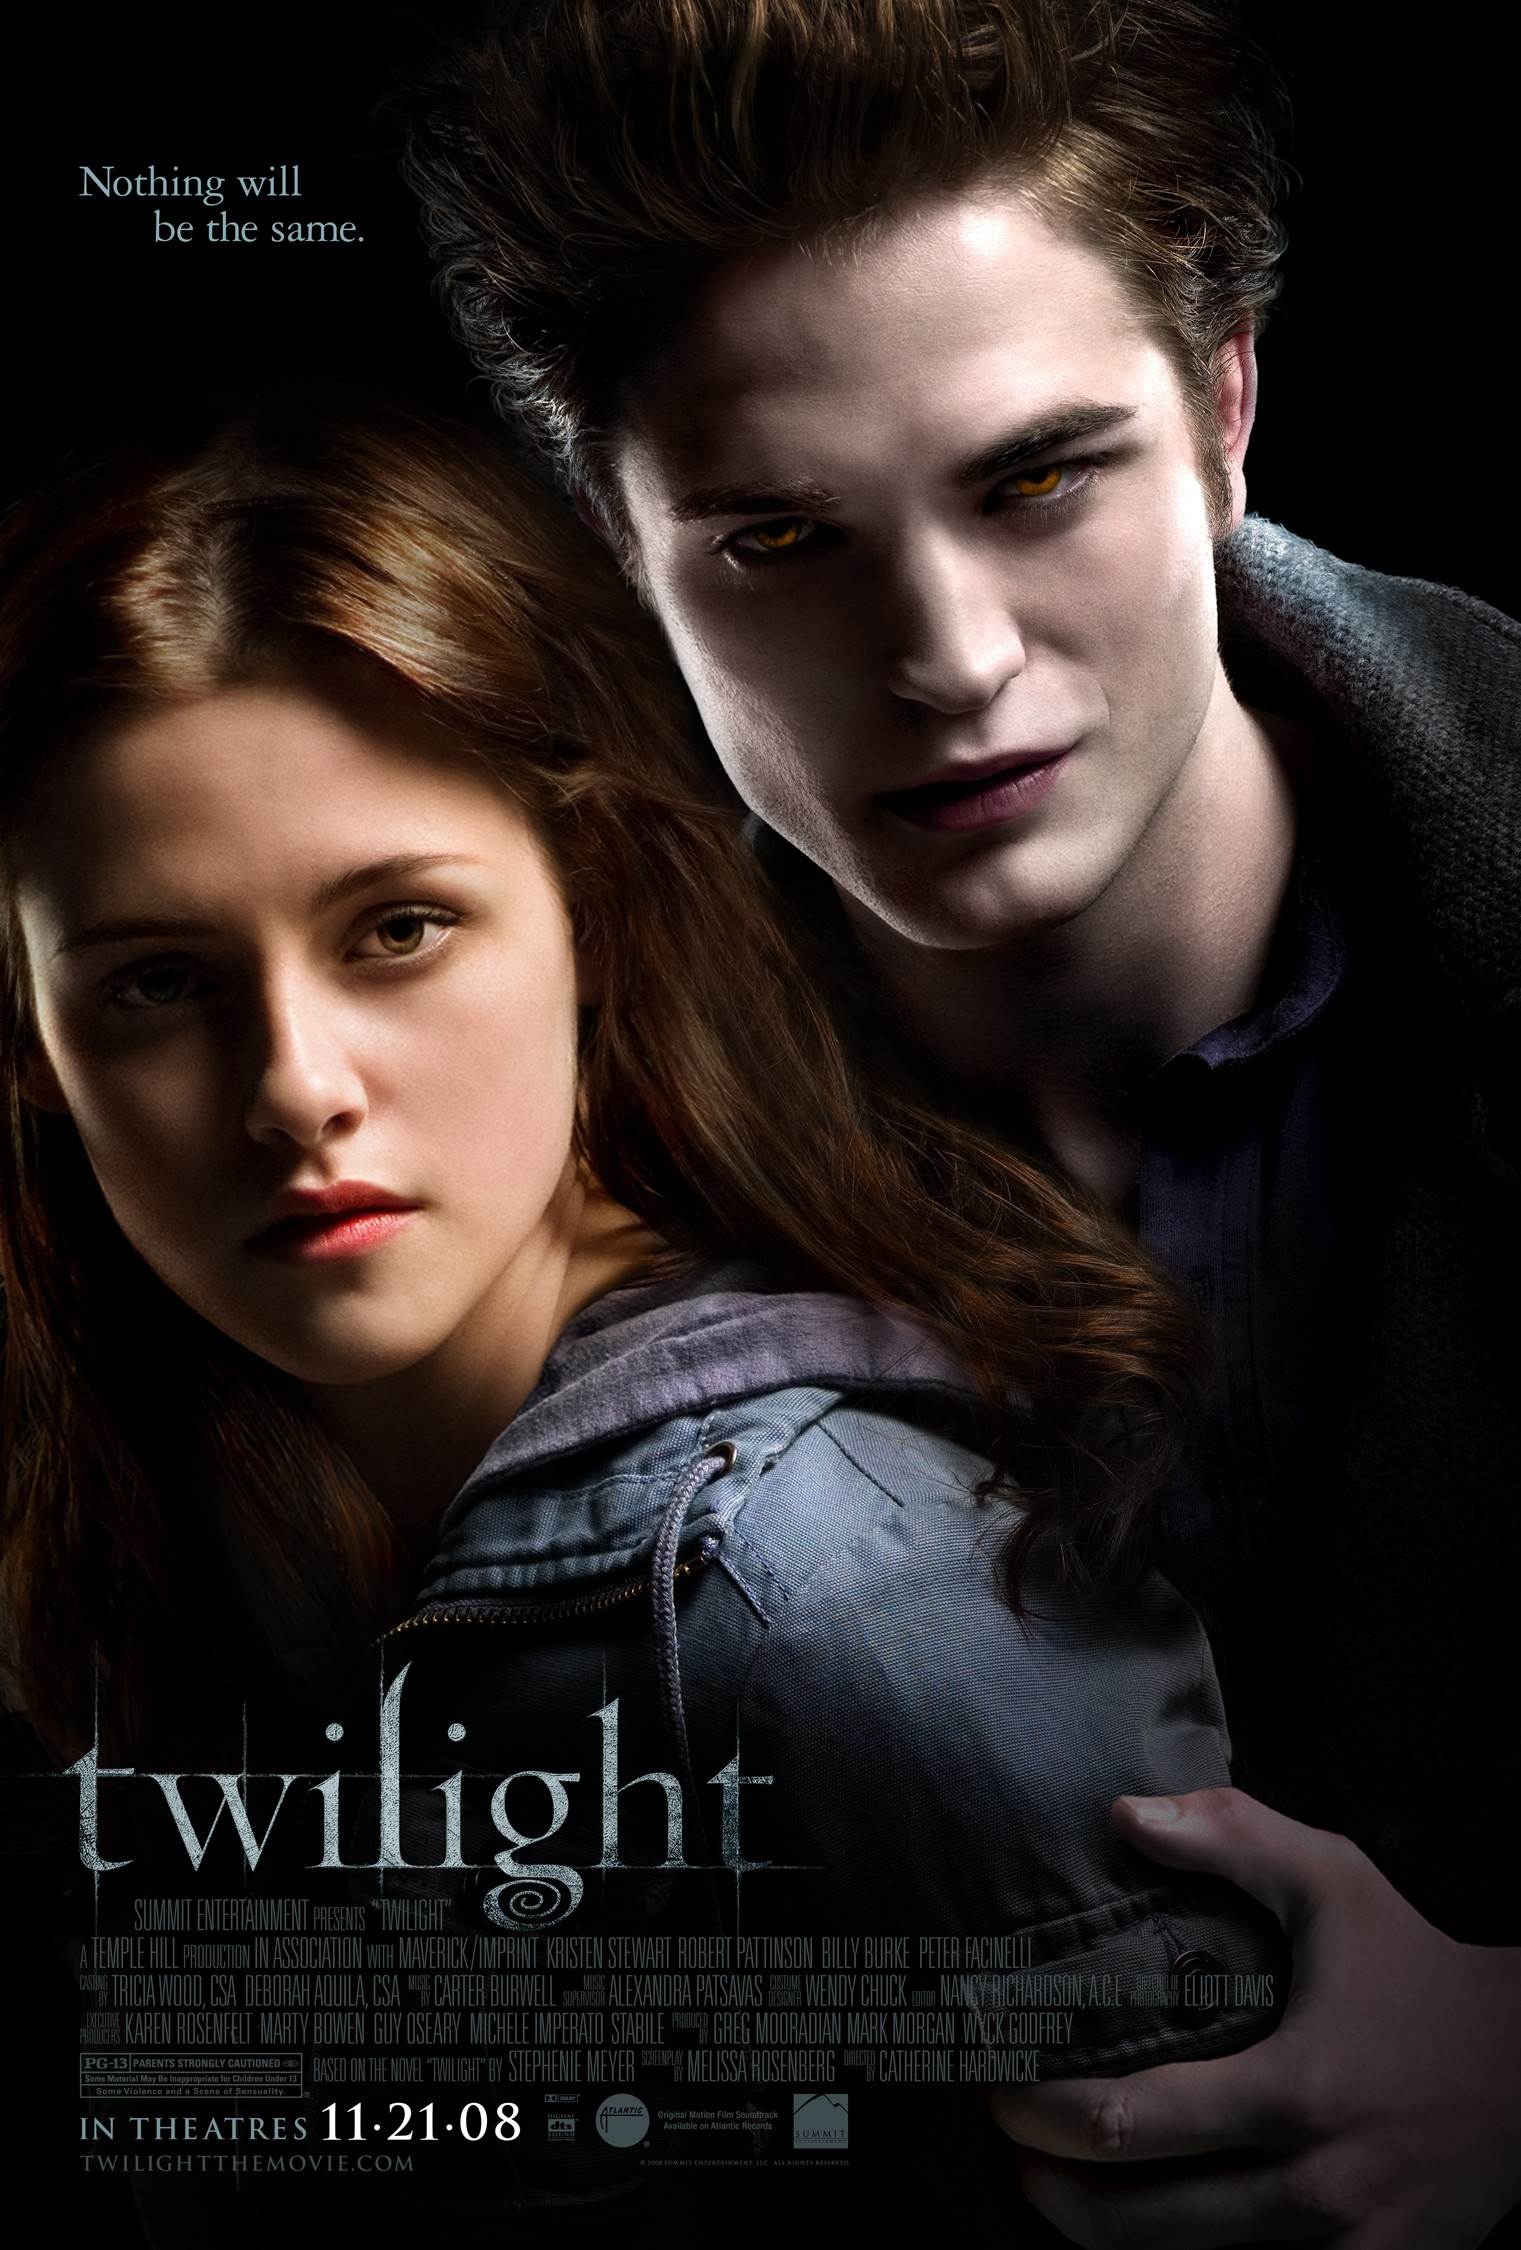 film review twilight Twilight movie reviews and ratings -tributeca rating of 392 out of 5 stars.